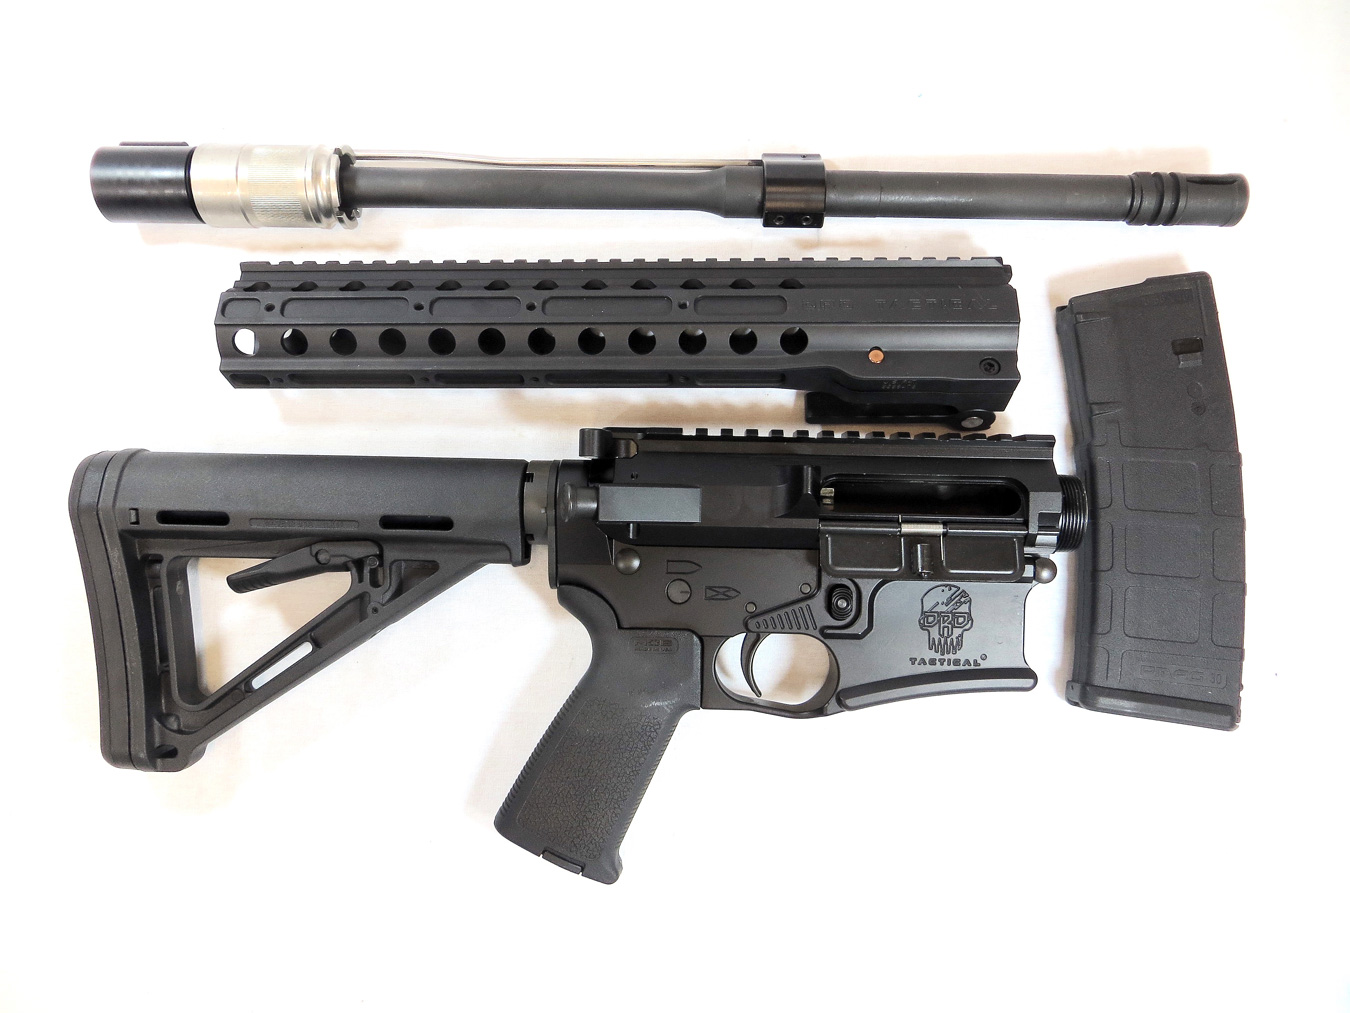 Disassembled DRD AR-15 rifle